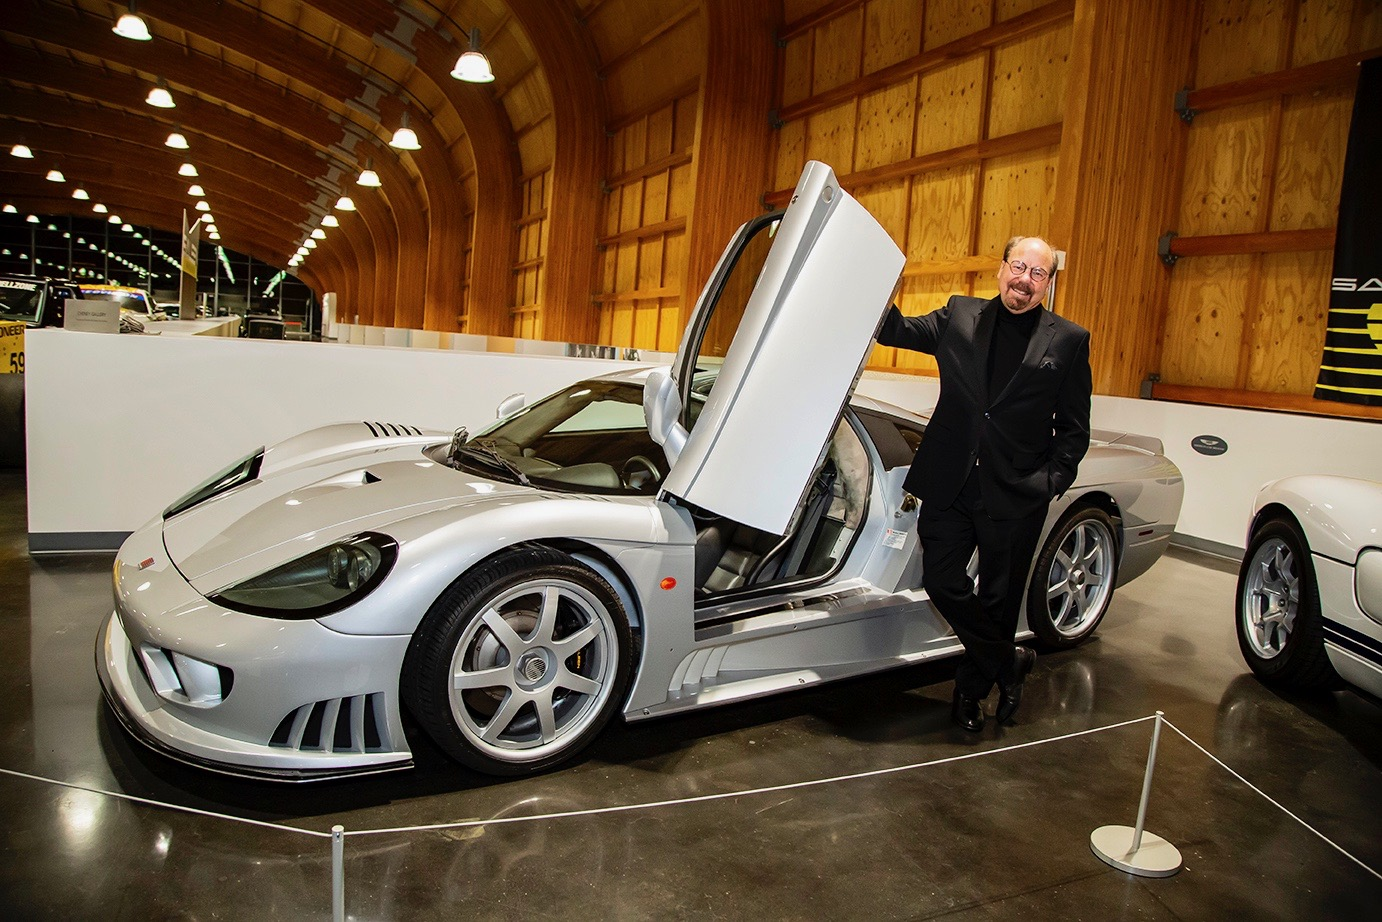 LeMay, LeMay museum salutes Saleen with year-long exhibit, ClassicCars.com Journal